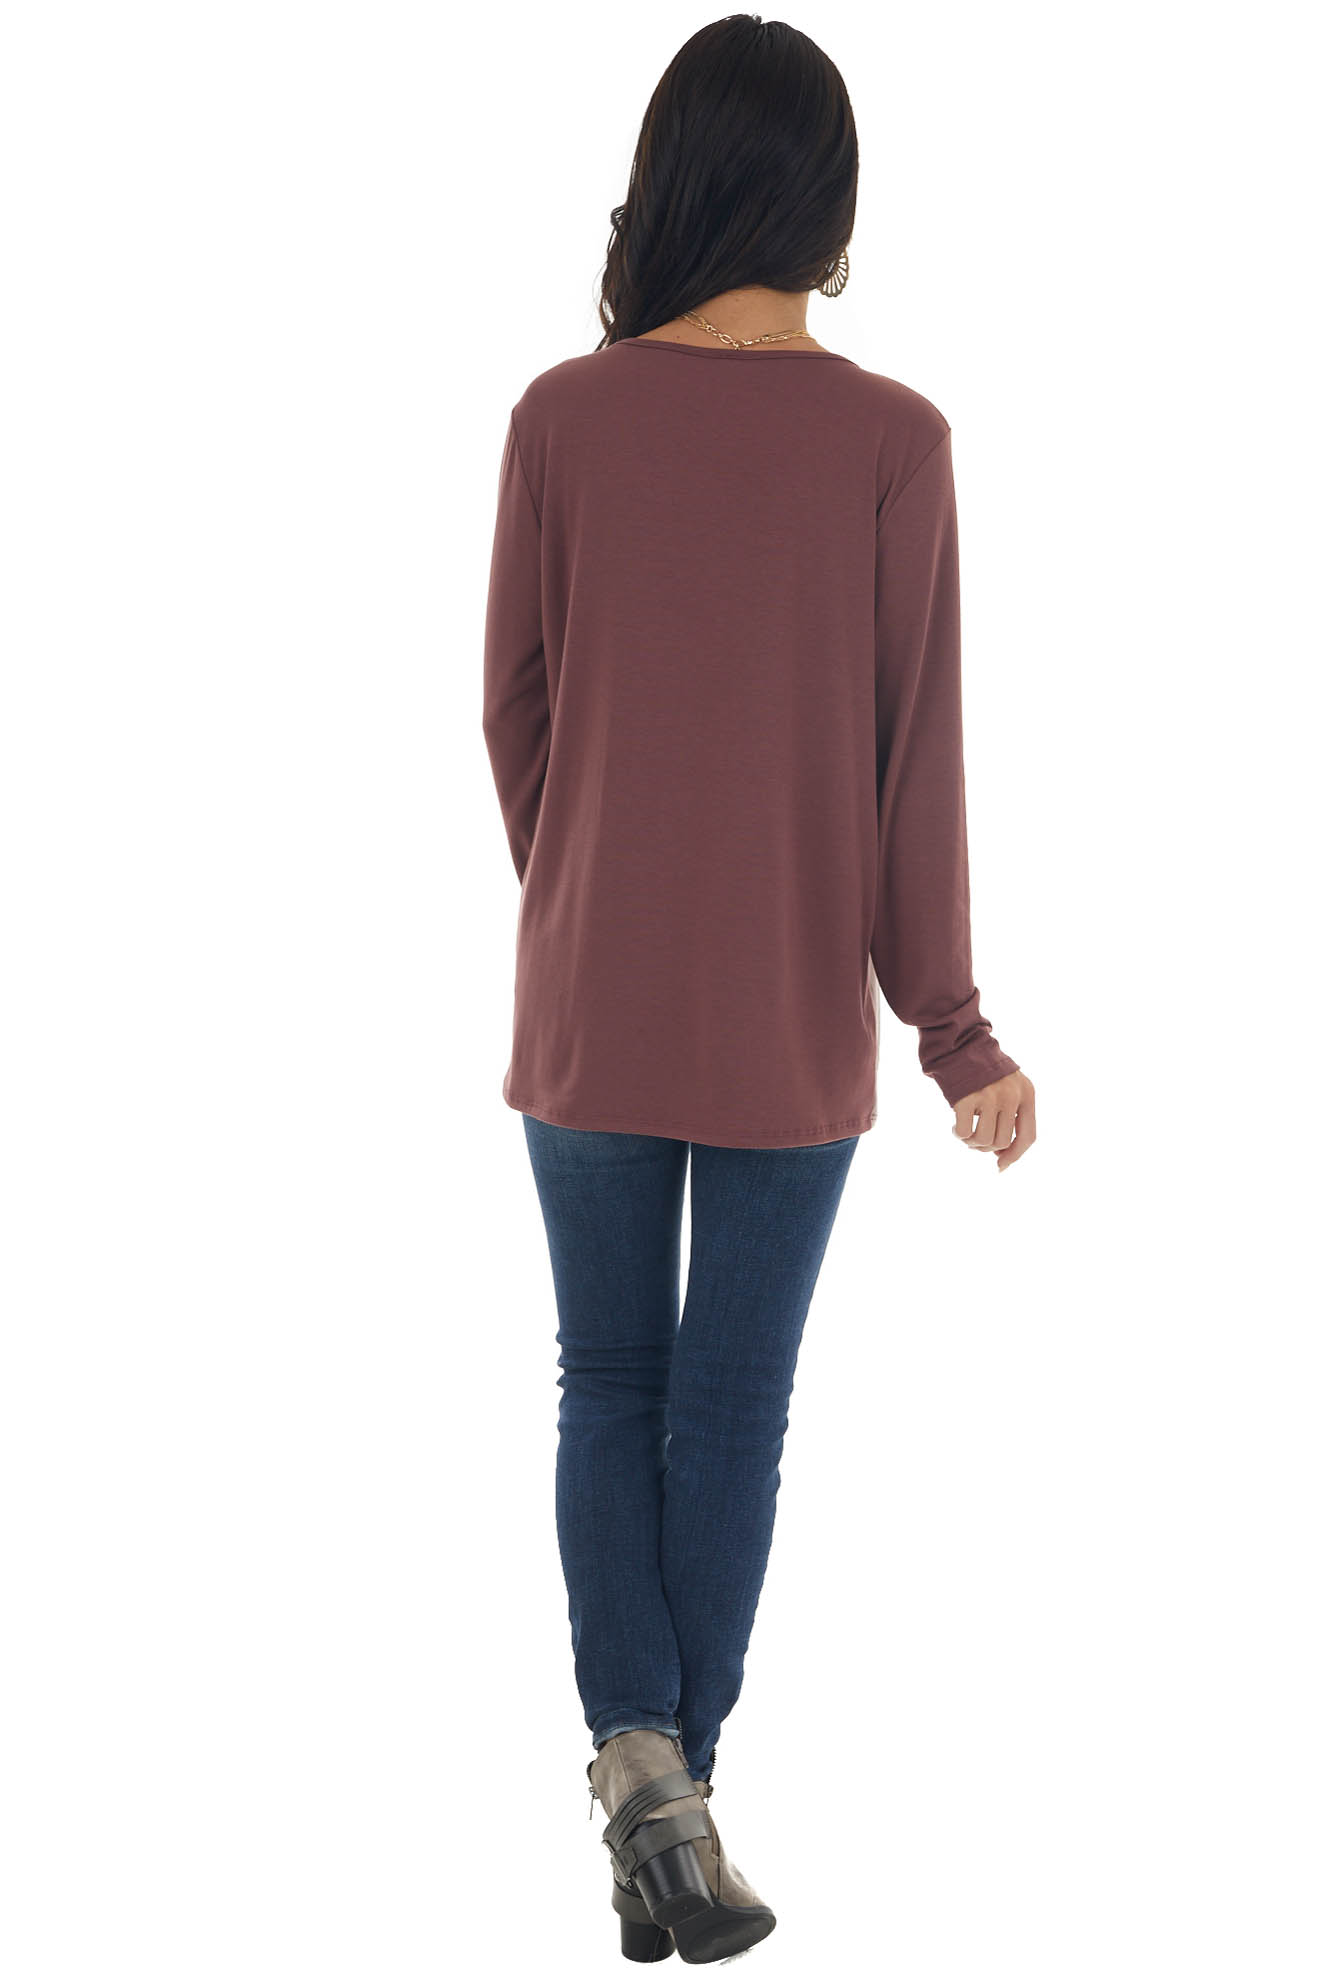 Sienna Long Sleeve Knit Top with Leopard Print